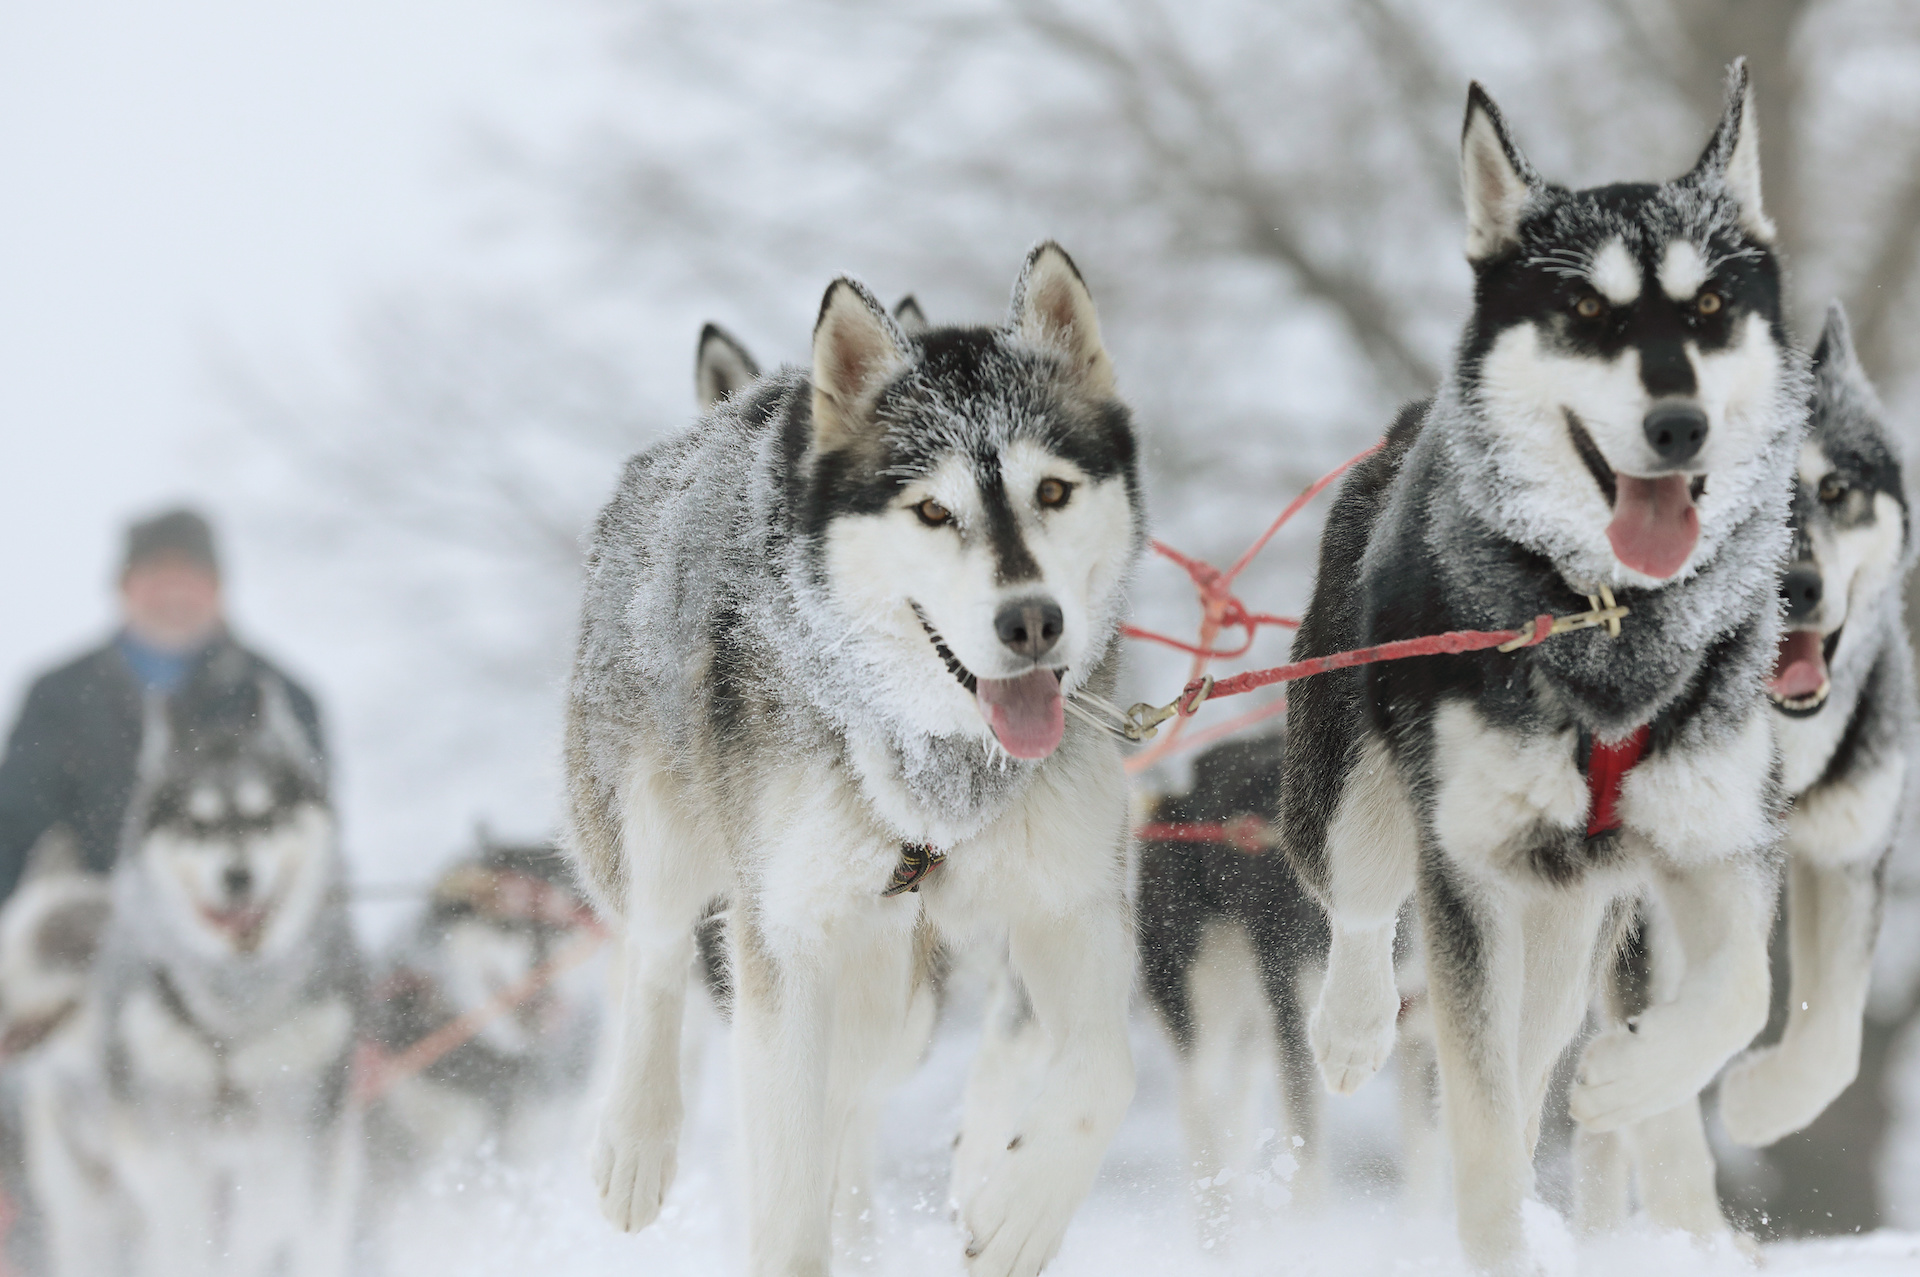 Sled dogs pulling together